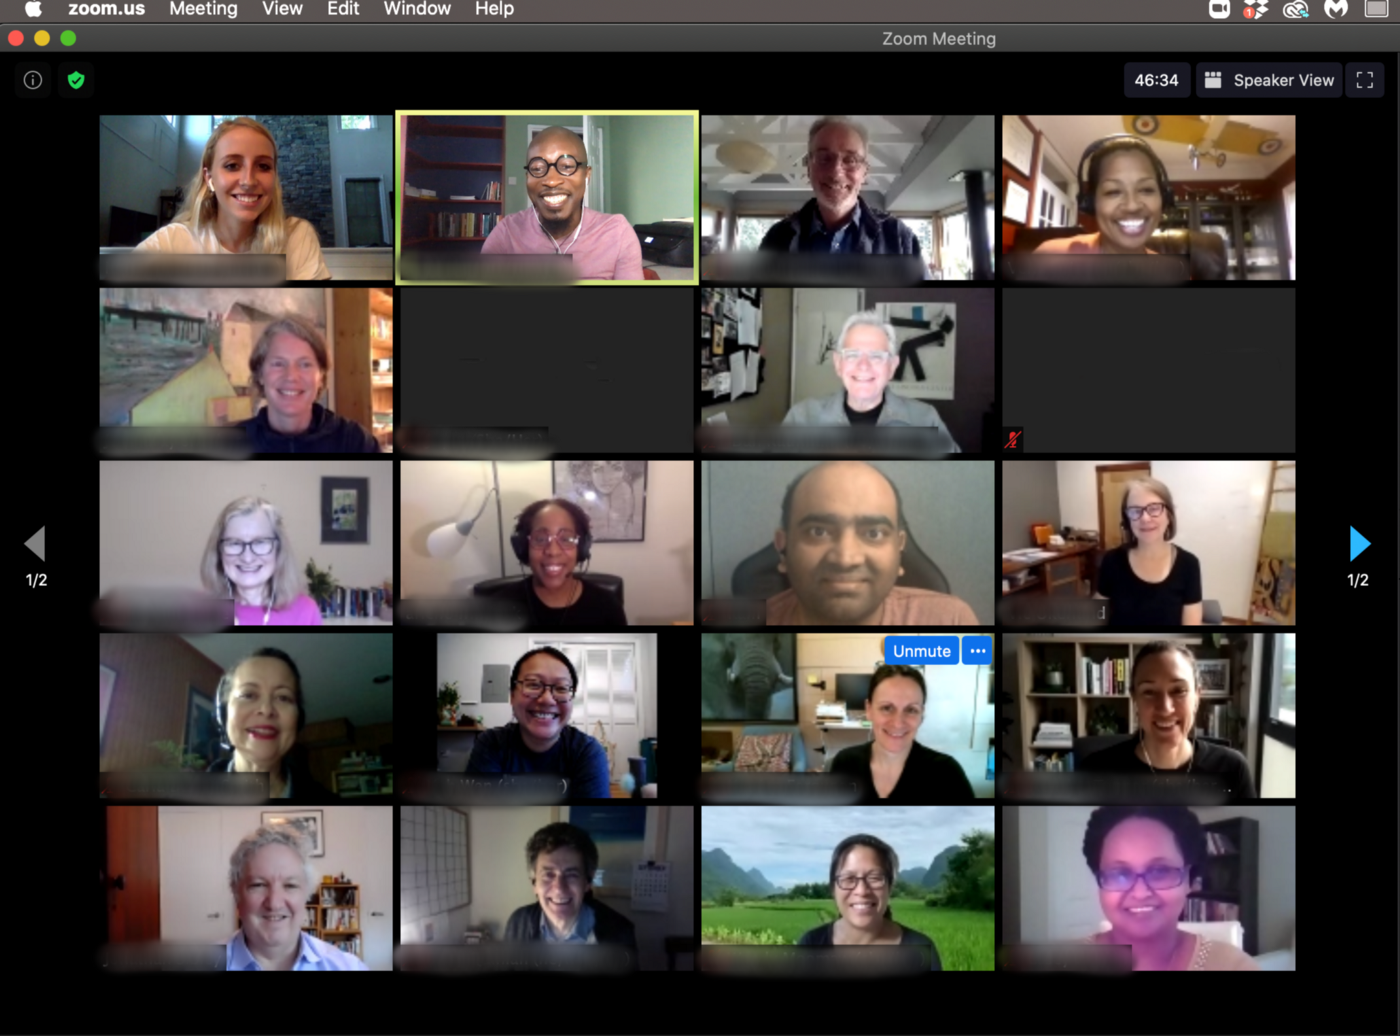 screen shot of a Zoom room with smiling faces